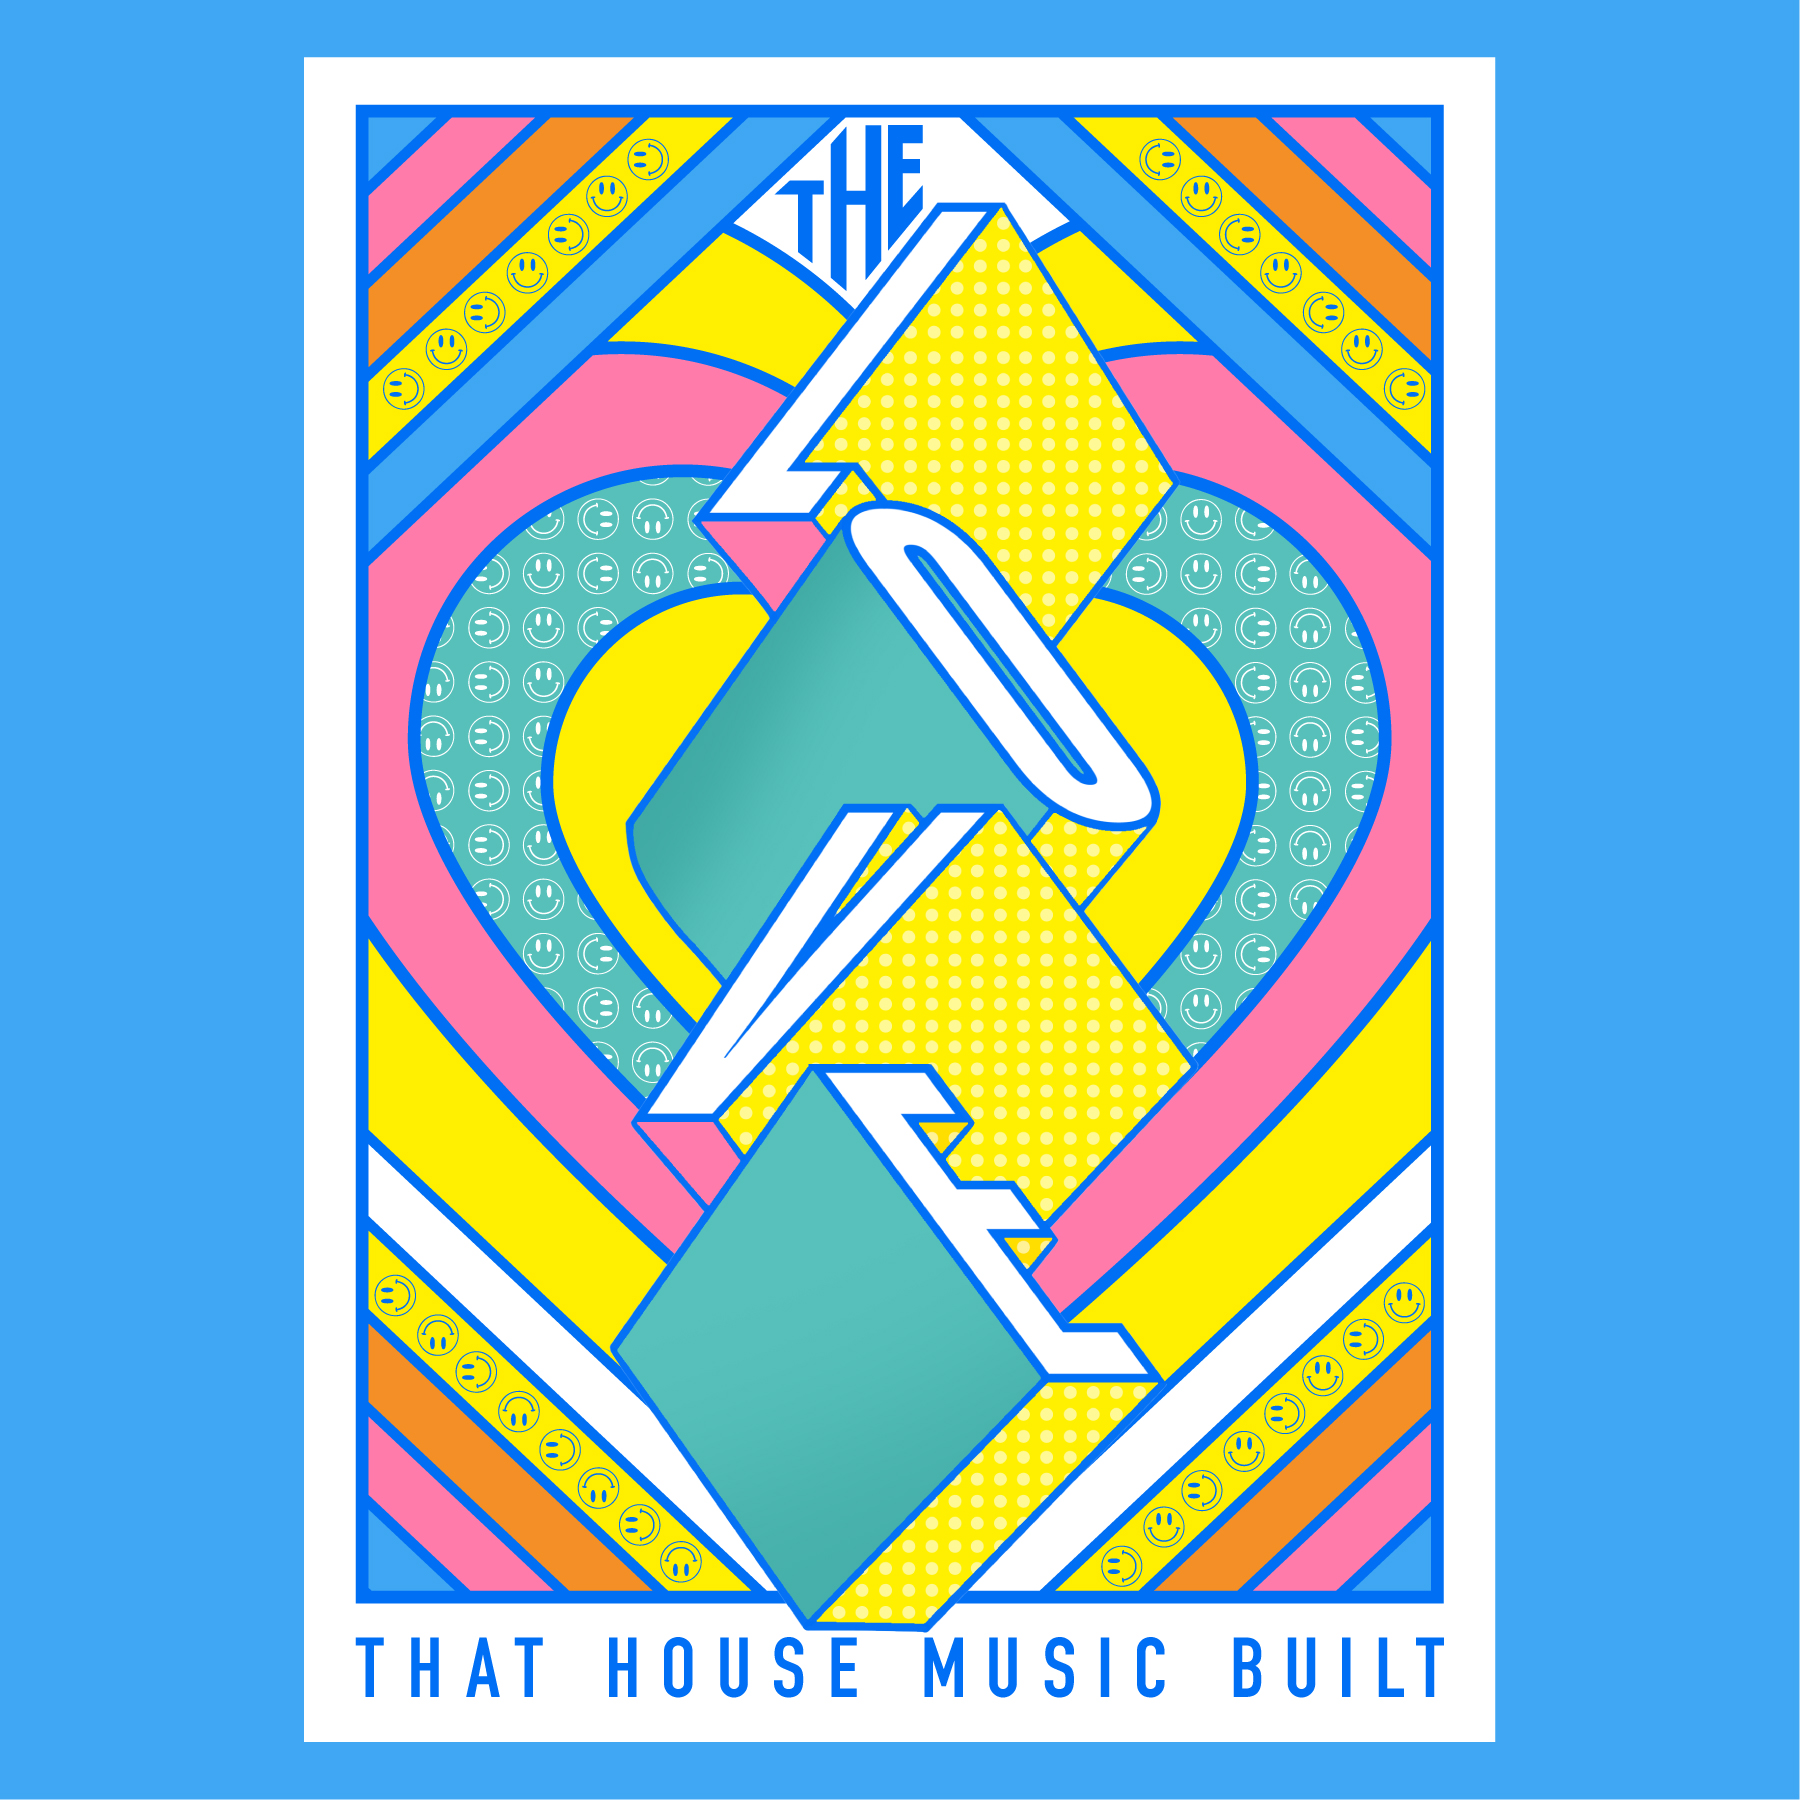 The Love That House Music Built